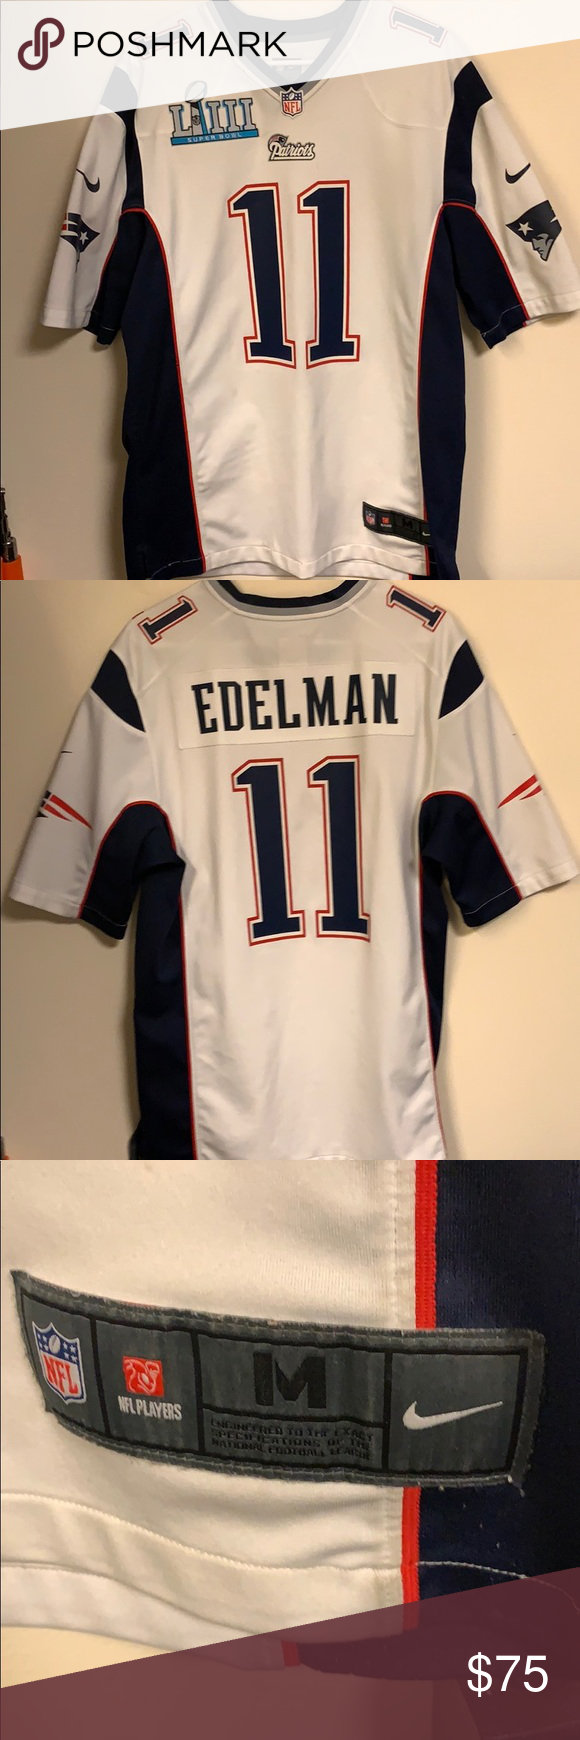 White Julian Edelman Patriots Jersey Used Edelman Jersey With Custom Iron On Super Bowl Badge Some Slight Te Edelman Jersey Patriots Edelman Patriots